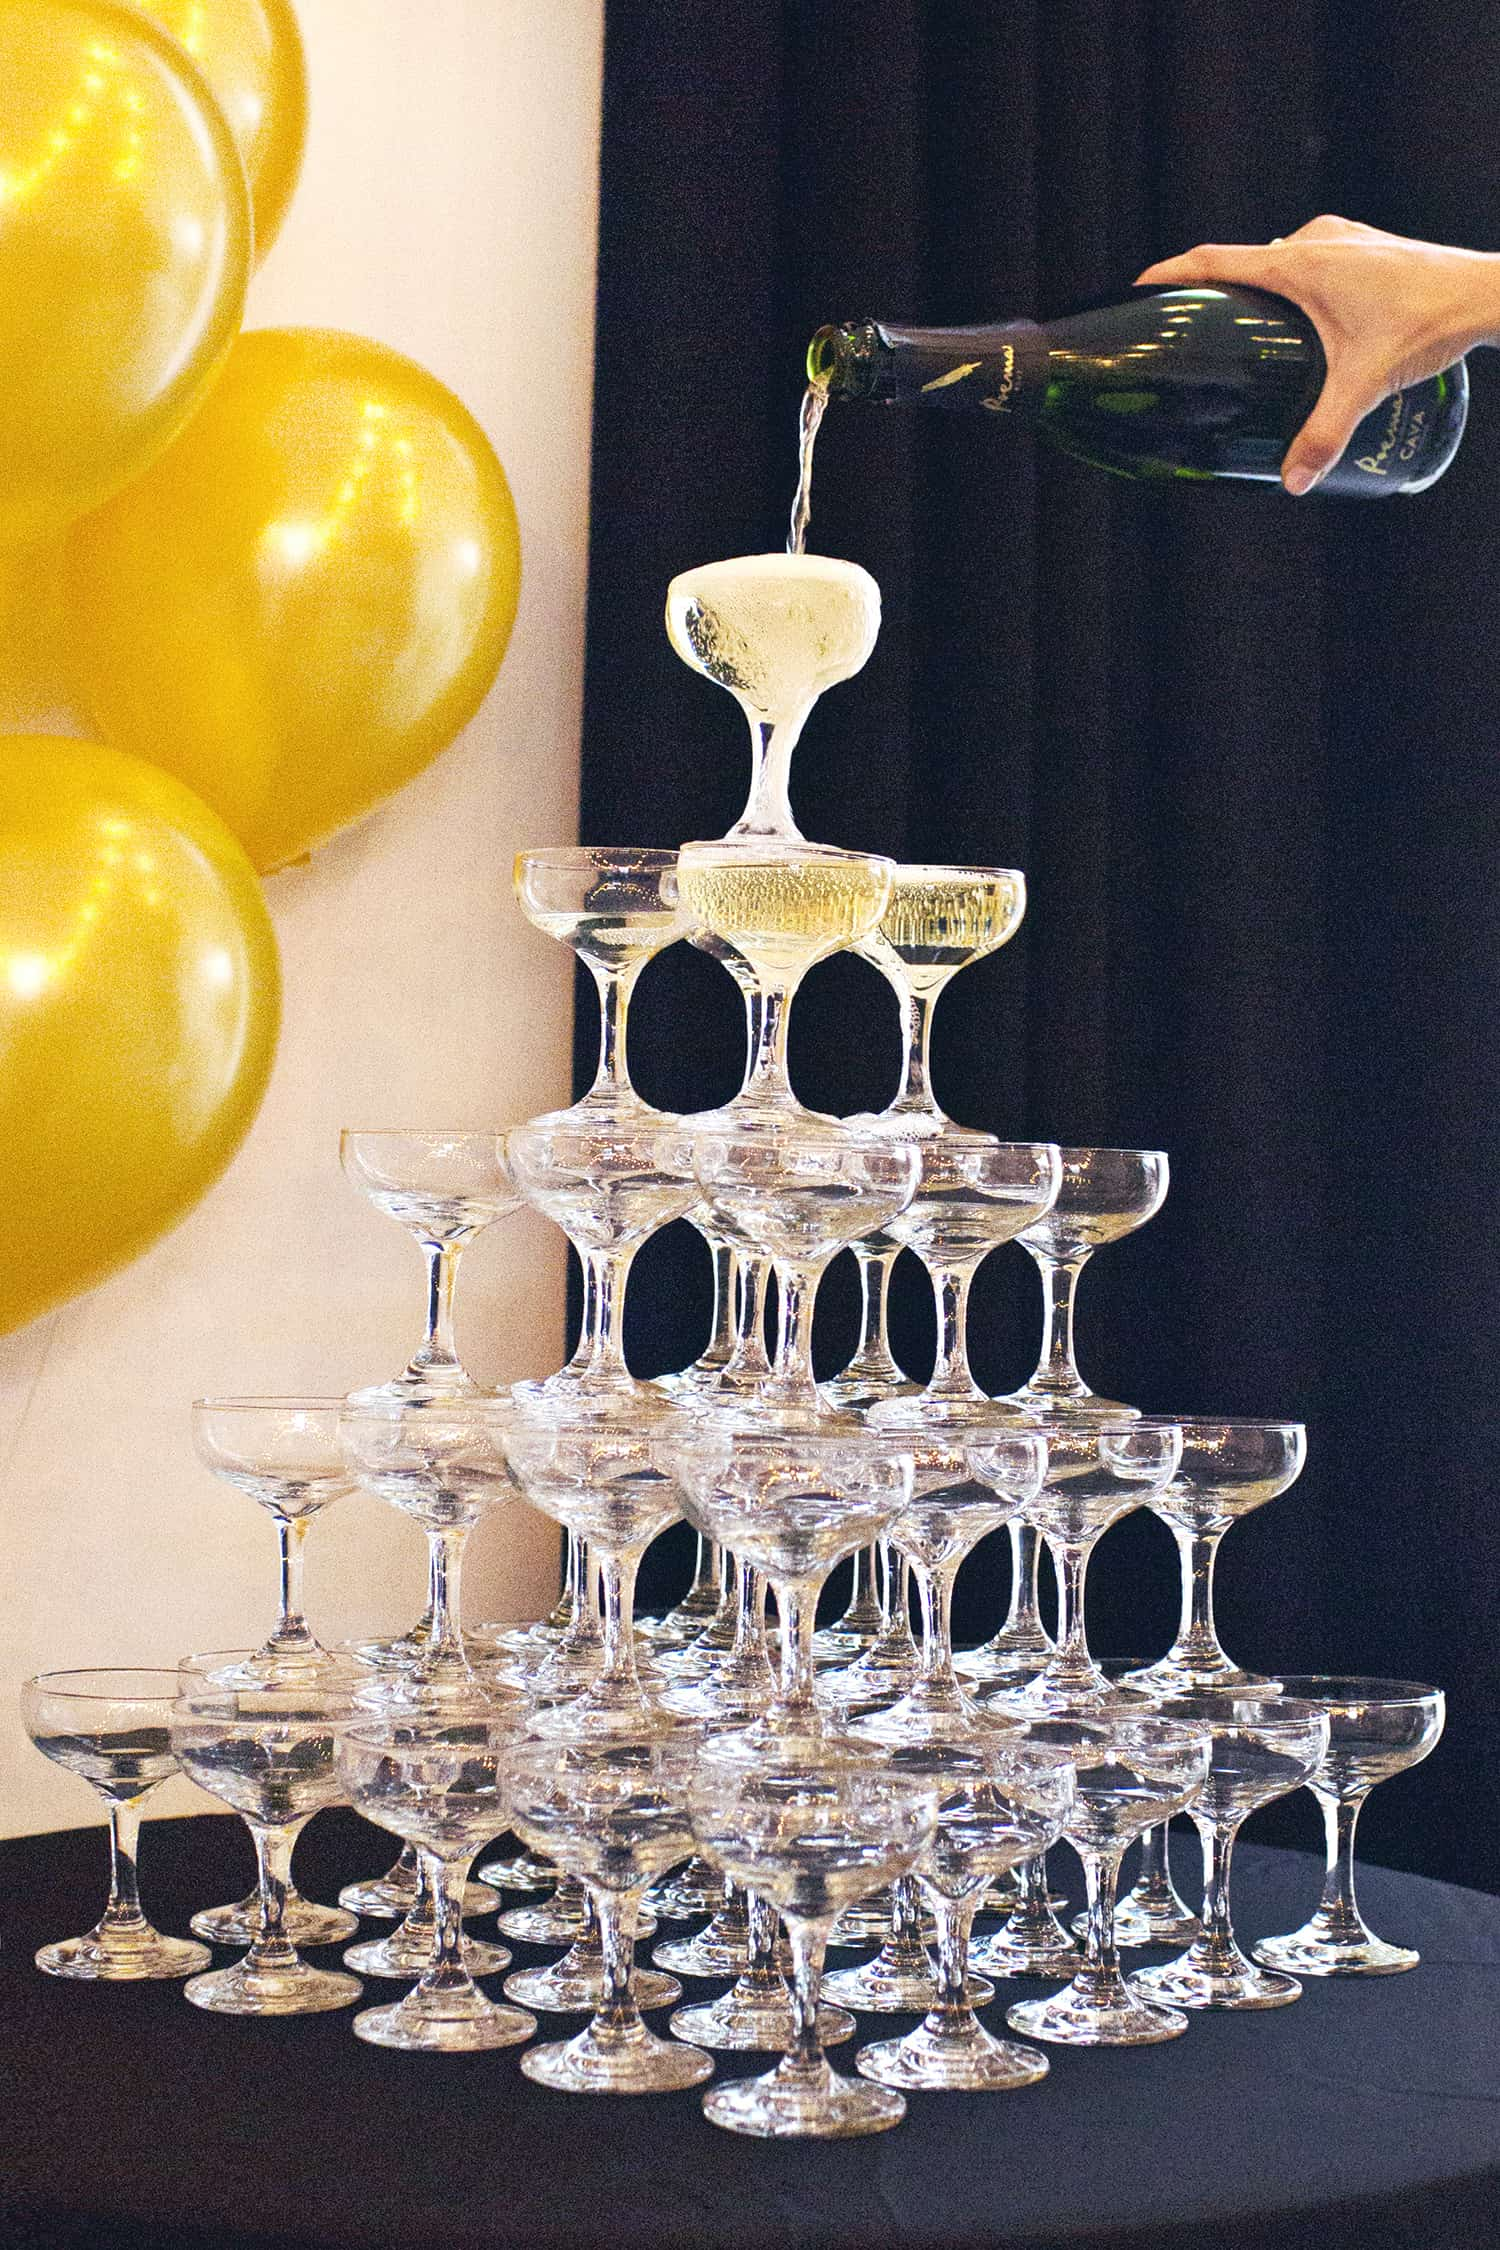 How To Build A Champagne Tower A Beautiful Mess